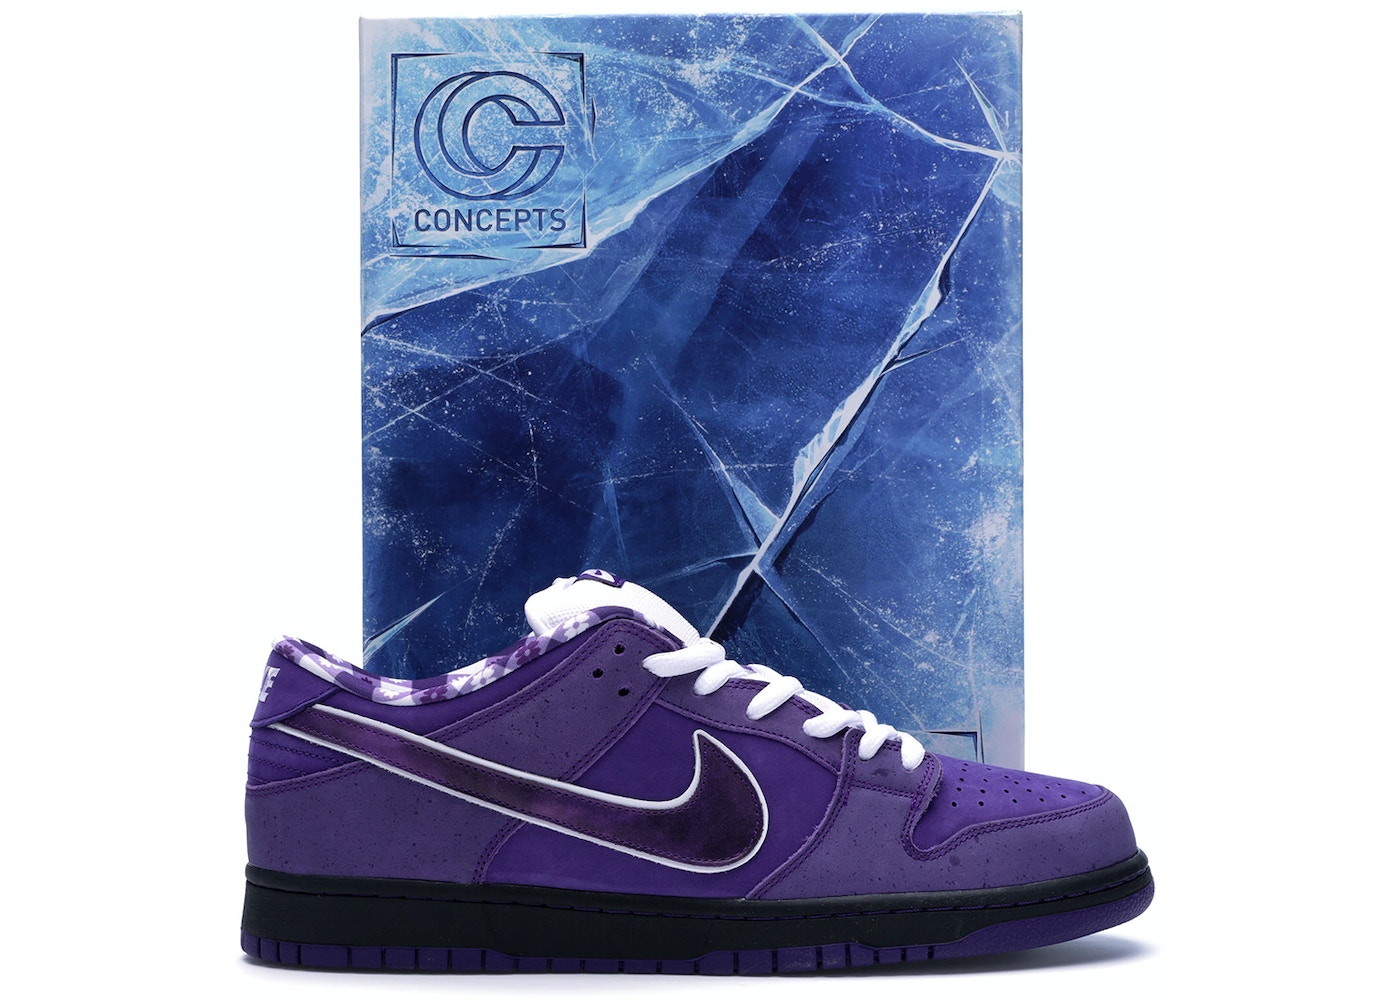 the latest 7ce76 68a62 Nike SB Dunk Low Concepts Purple Lobster (Special Box)